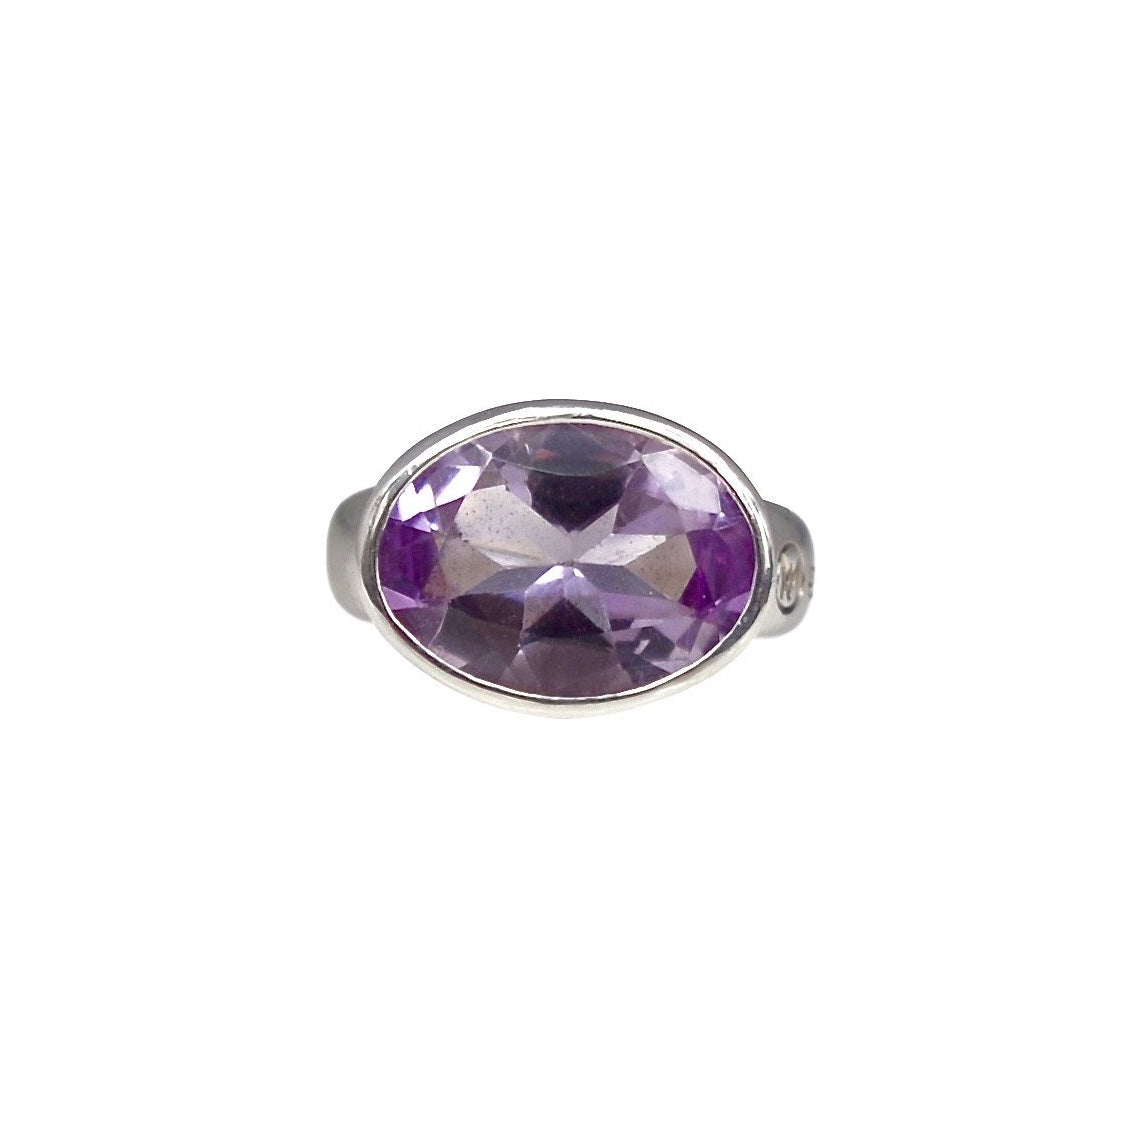 Allure Oval Amethyst Ring